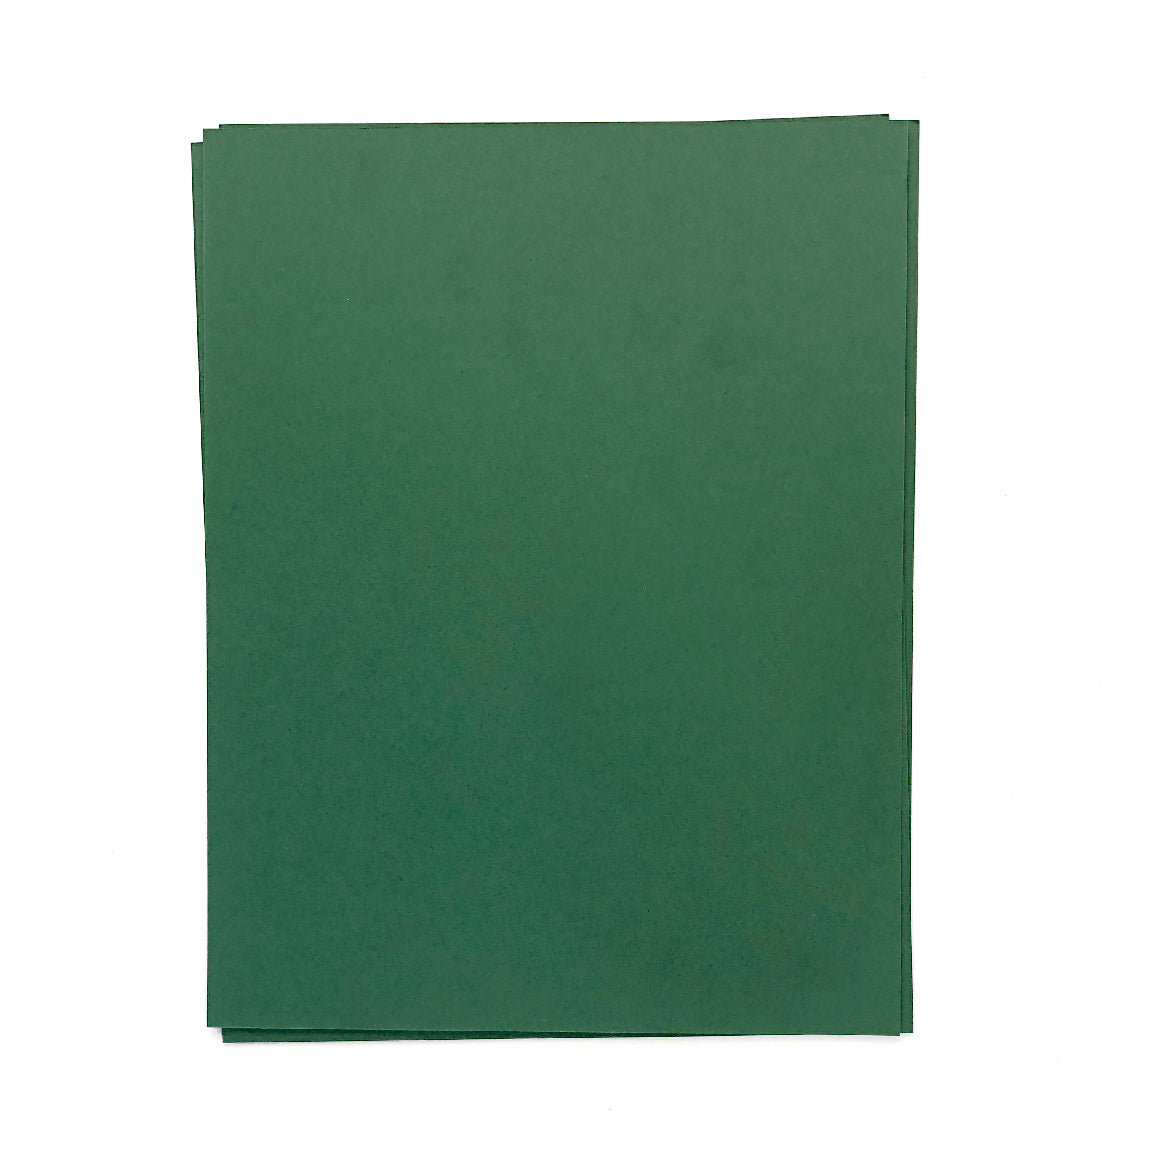 Evergreen Cardstock